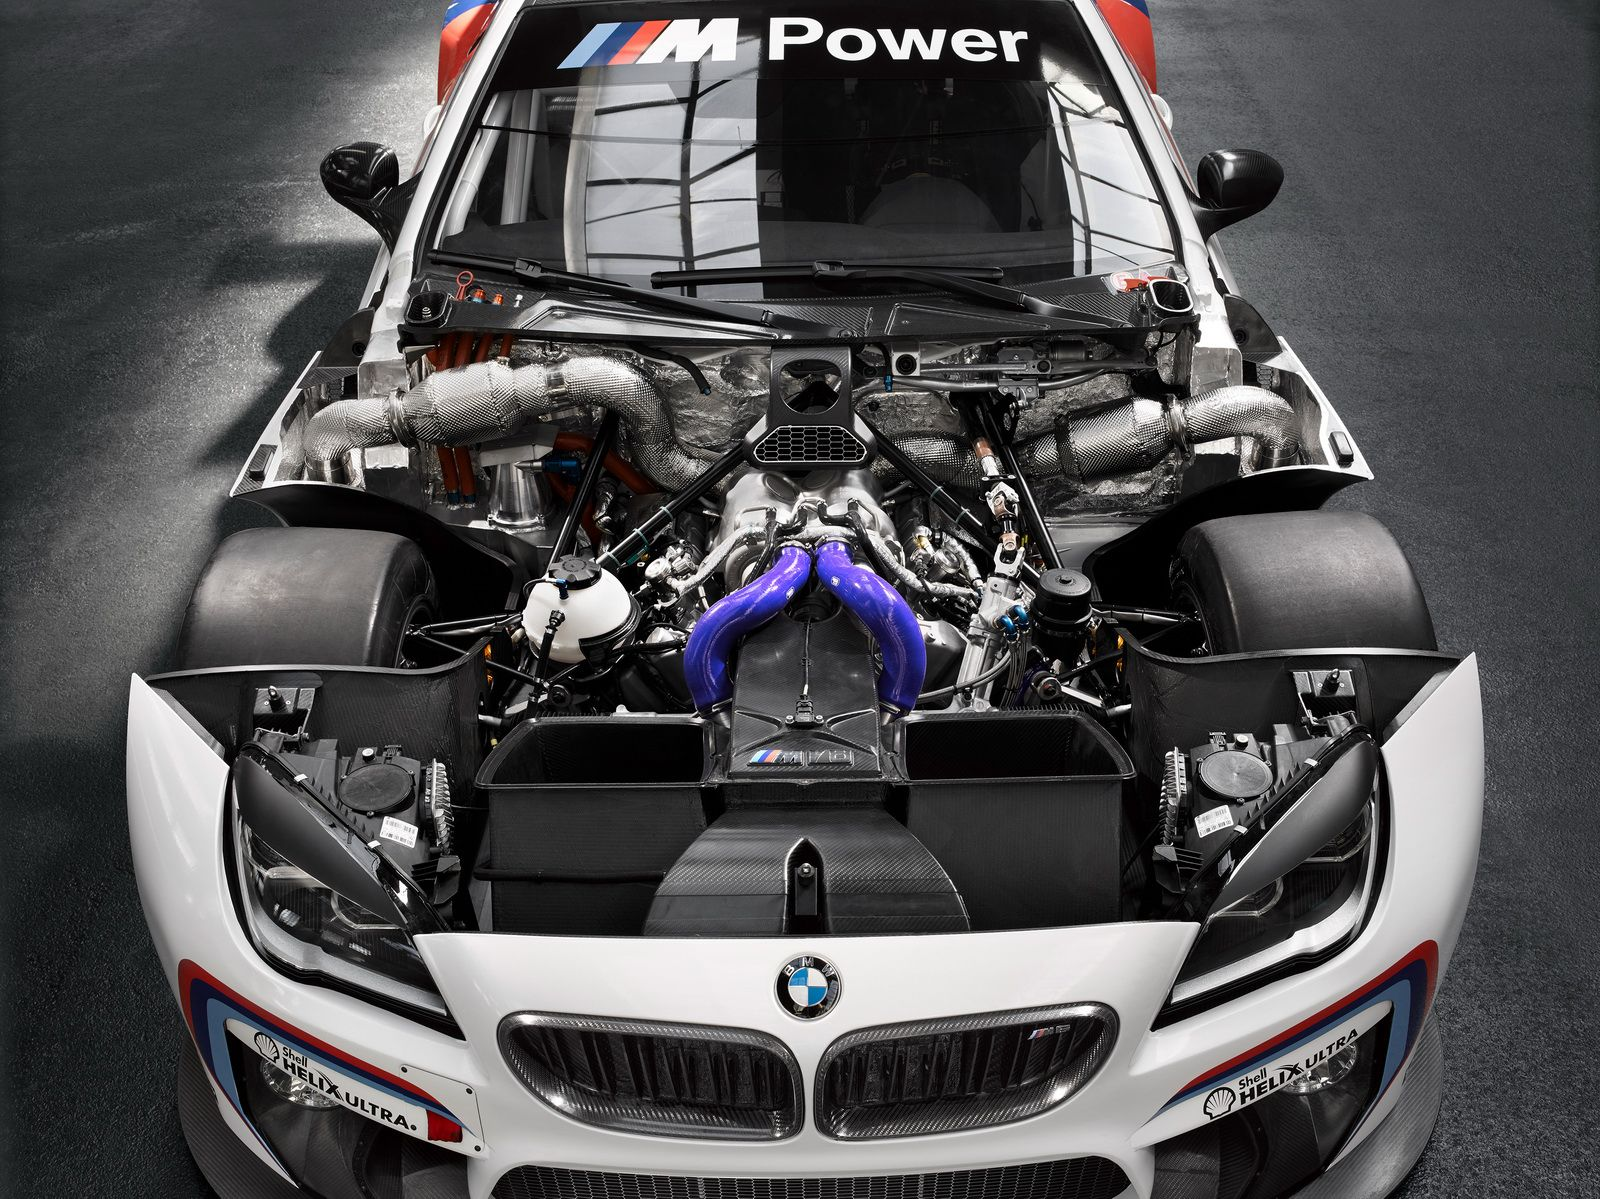 BMW M6 GT3 Finally Shows Its Racing Colors | Touring & GT racing ...